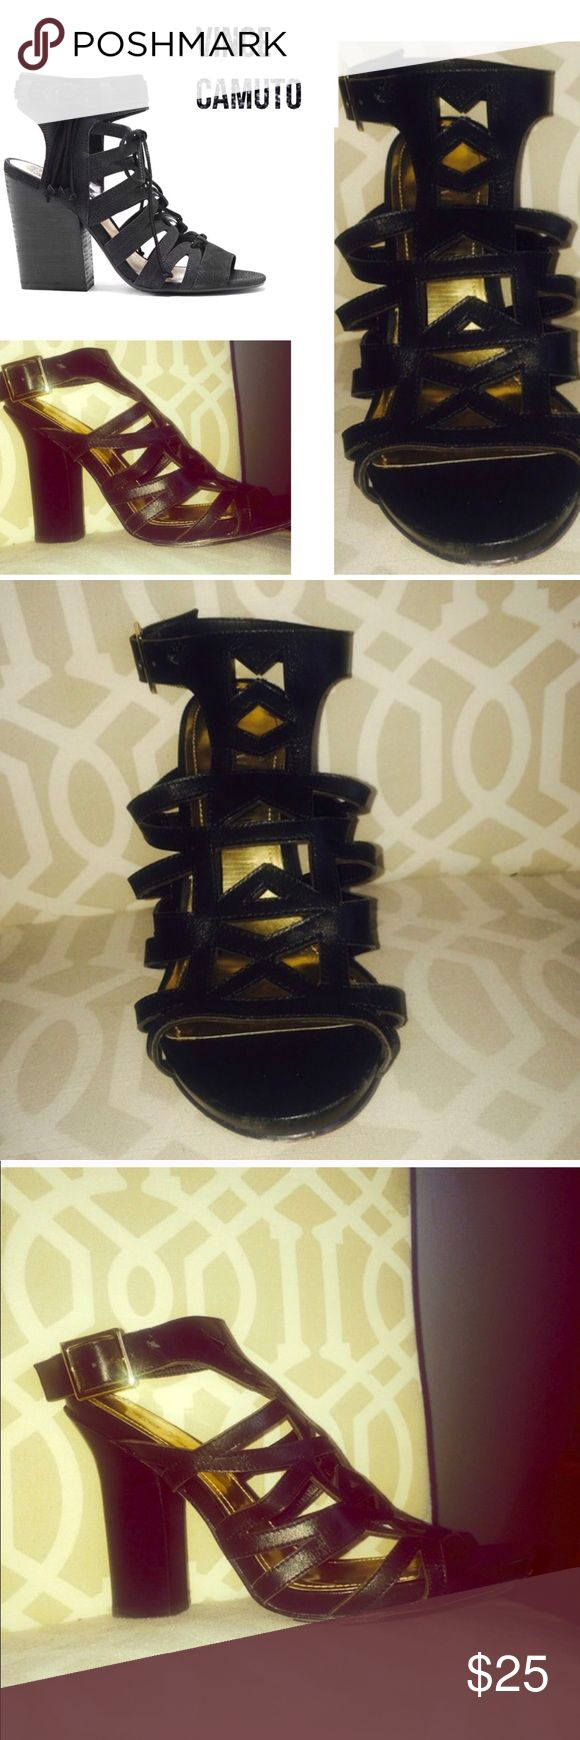 Vince Camuto EUC Black Strappy Wedges These are a keeper ! I just have too many shoes 👠 ' and my loss is your gain! Very comfortable, Black, Leather, about 2 1/2 inch heel. Stock photo is a similar shoe, all the rest are mine! Vince Camuto Shoes